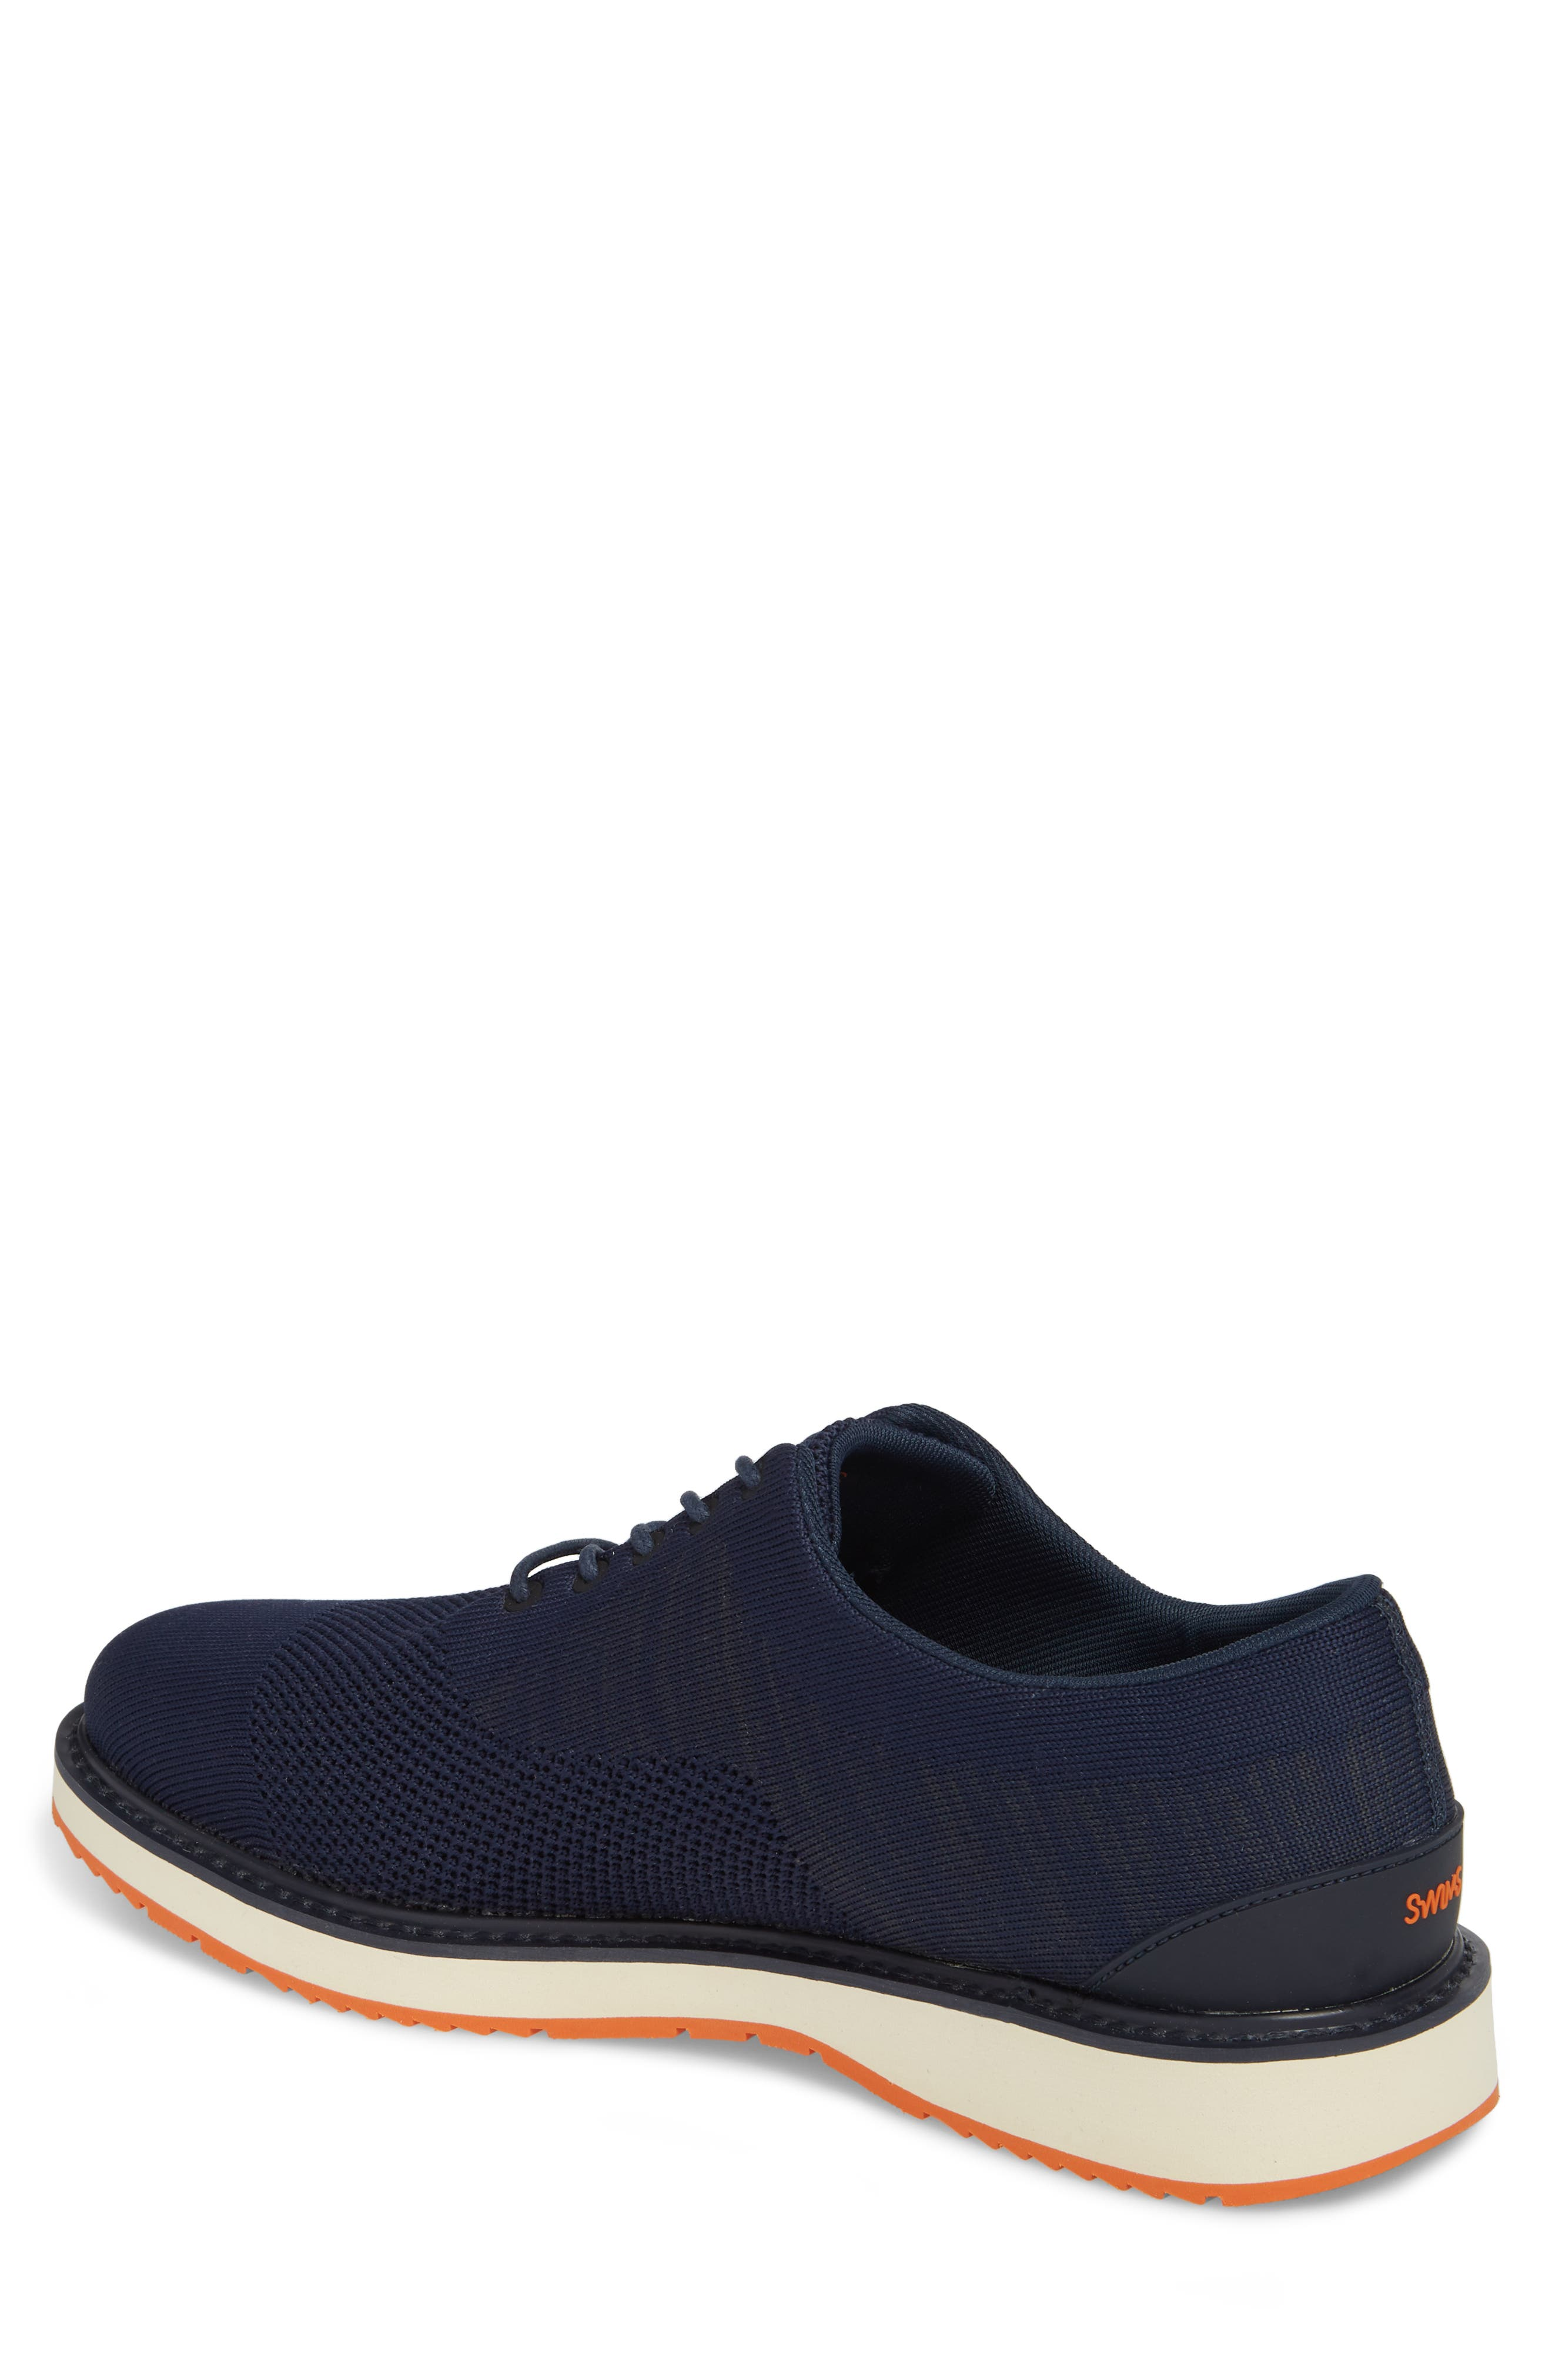 Alternate Image 2  - Swims Barry Knit Oxford (Men)